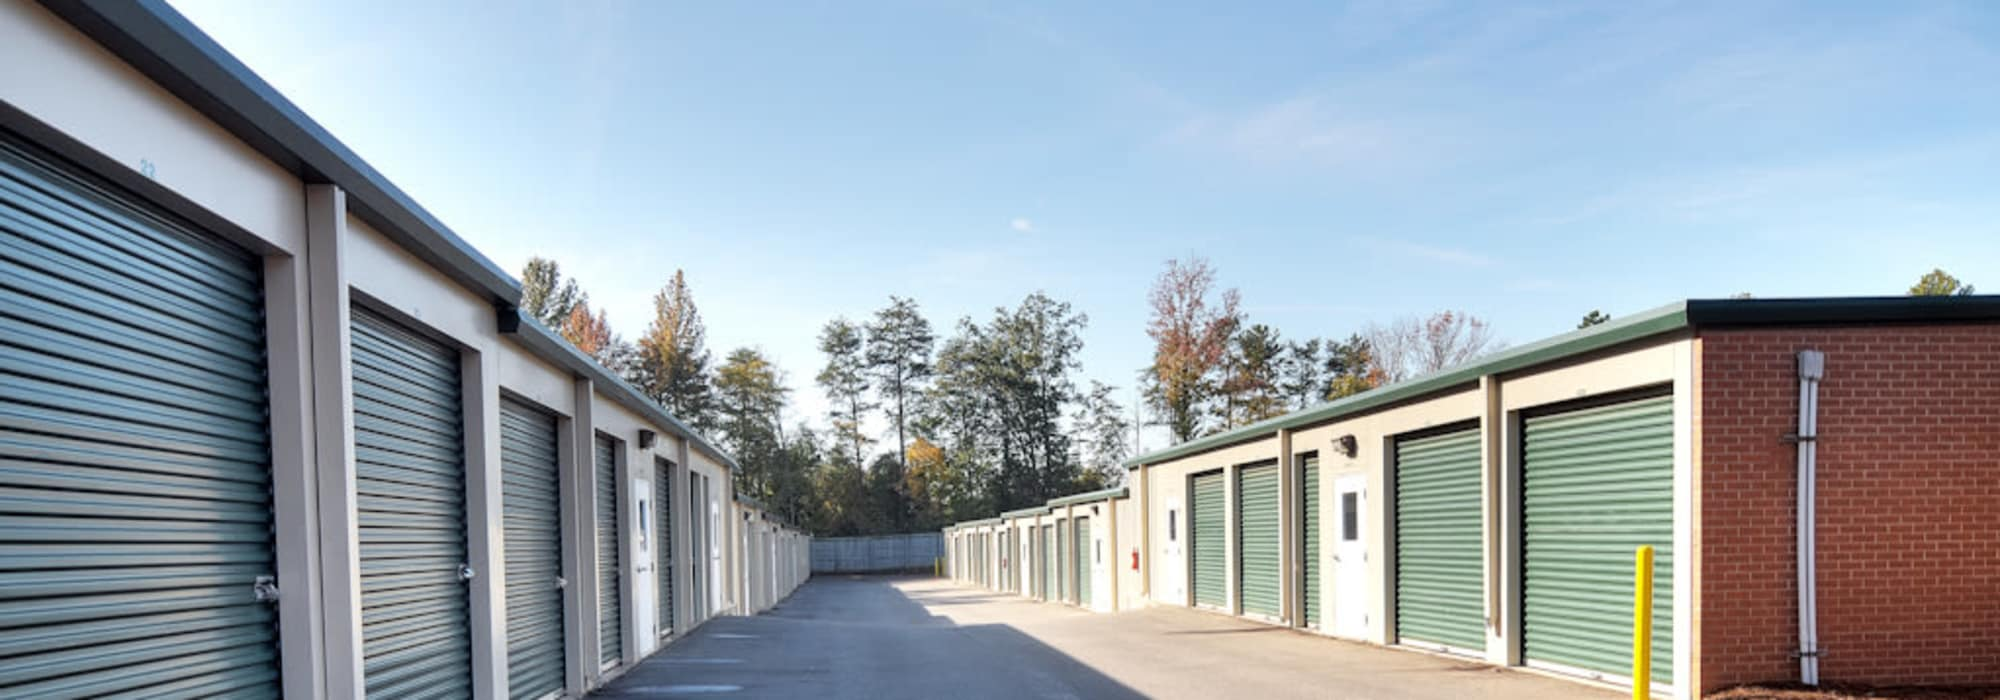 Self storage in Lake Wylie SC